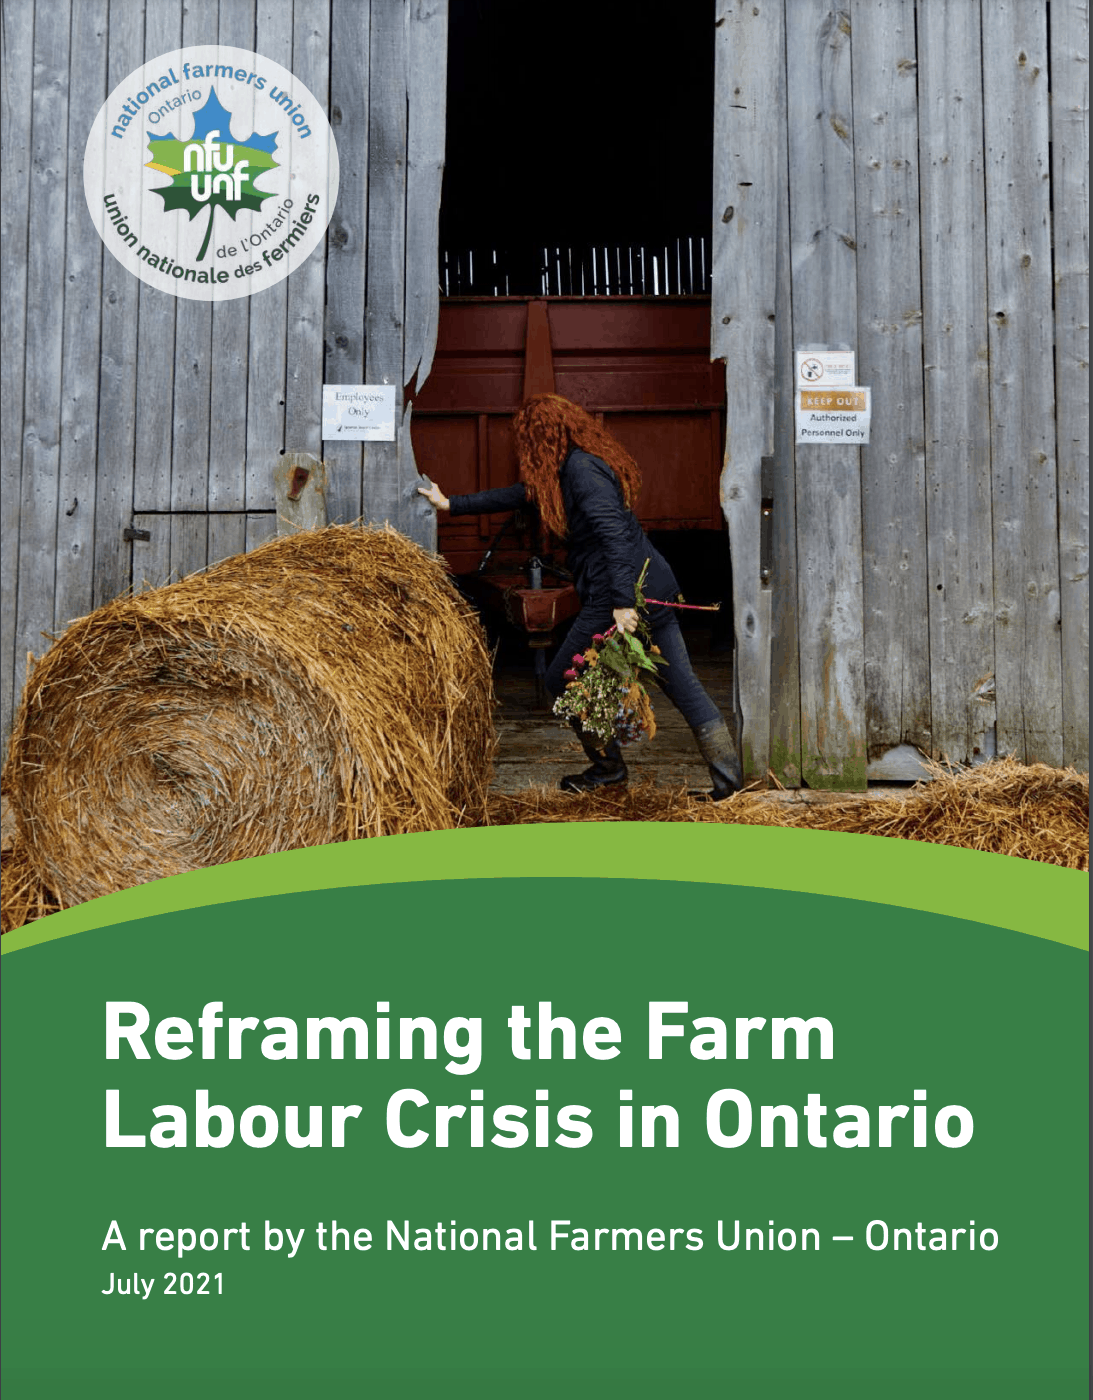 """NFU-O releases new report: """"Reframing the Farm Labour Crisis in Ontario"""""""